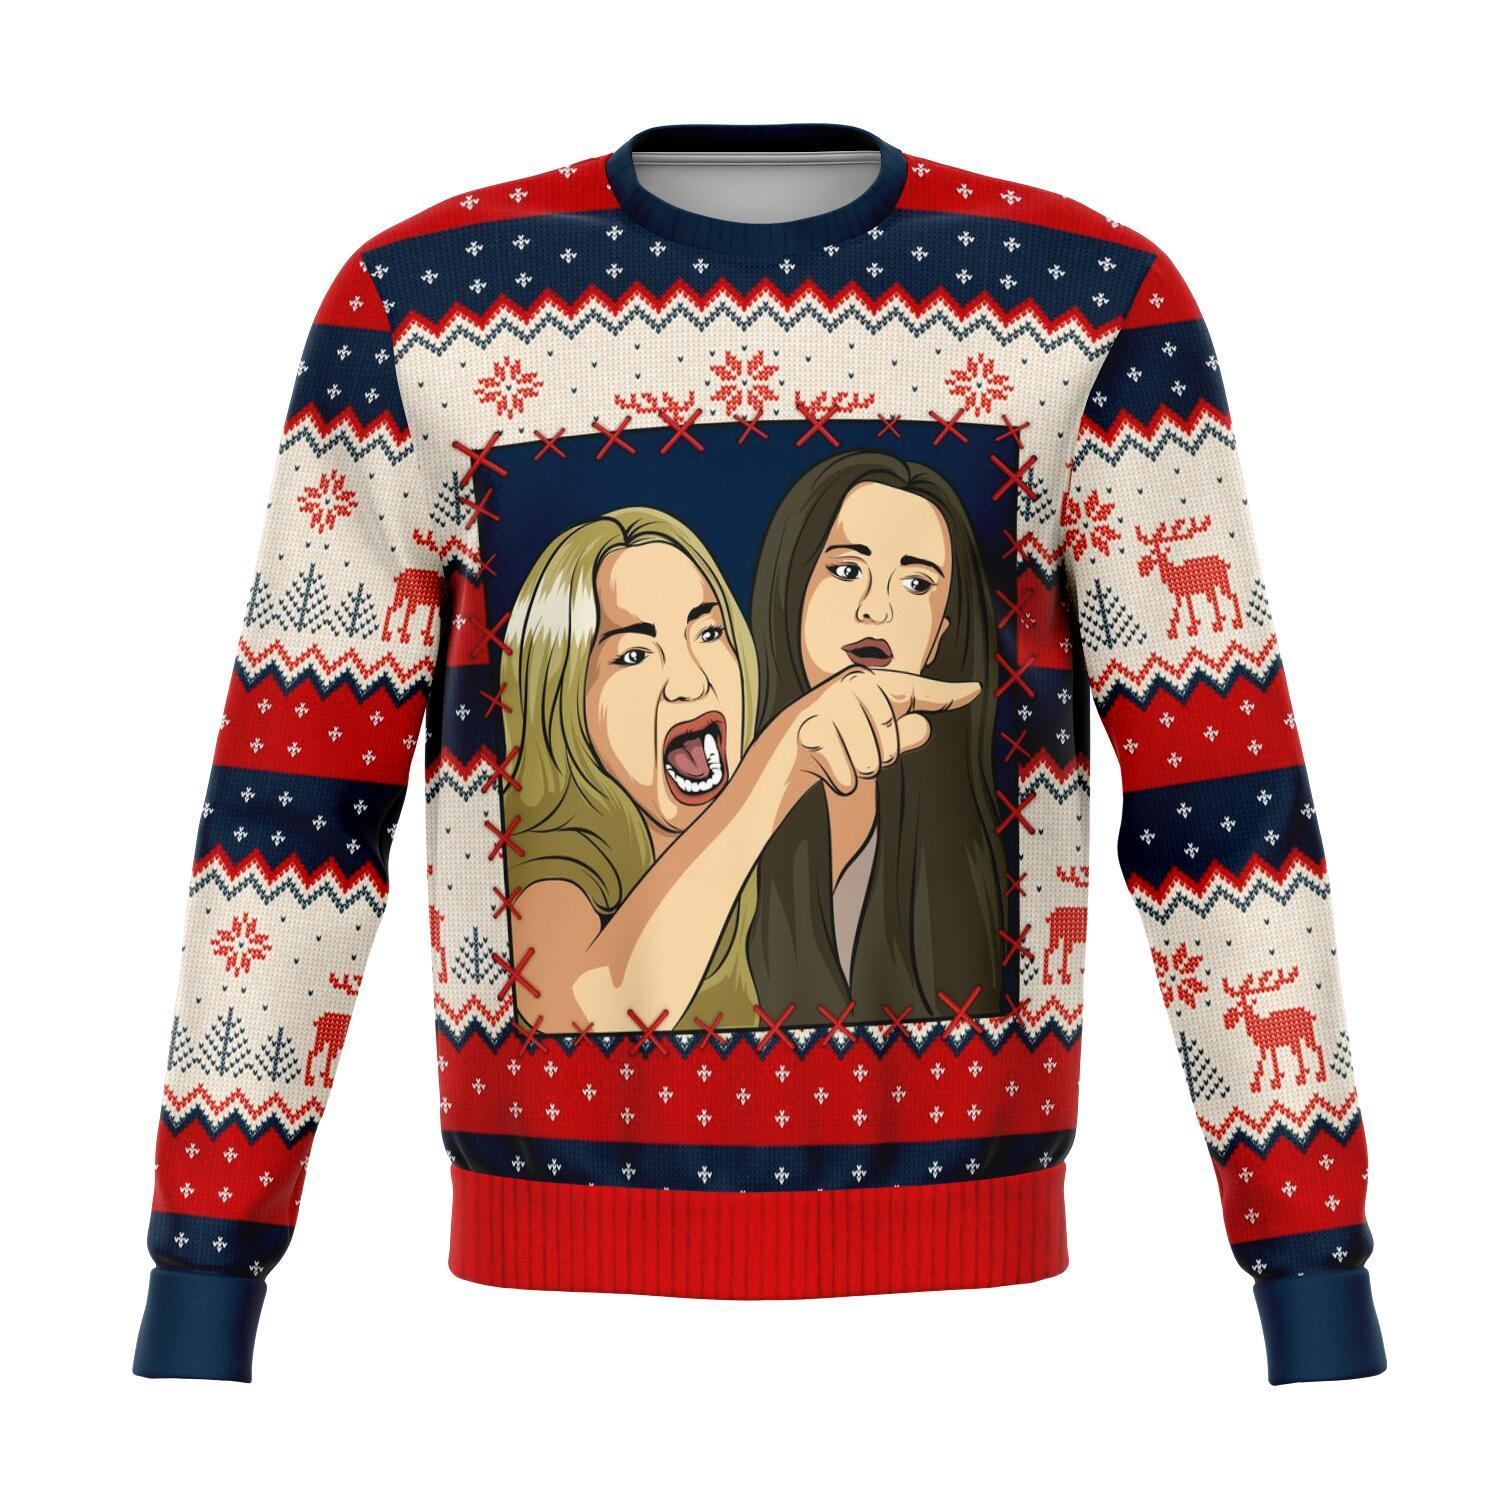 Woman Yelling At A Cat Meme #1 All-Over Printed Sweaters 1